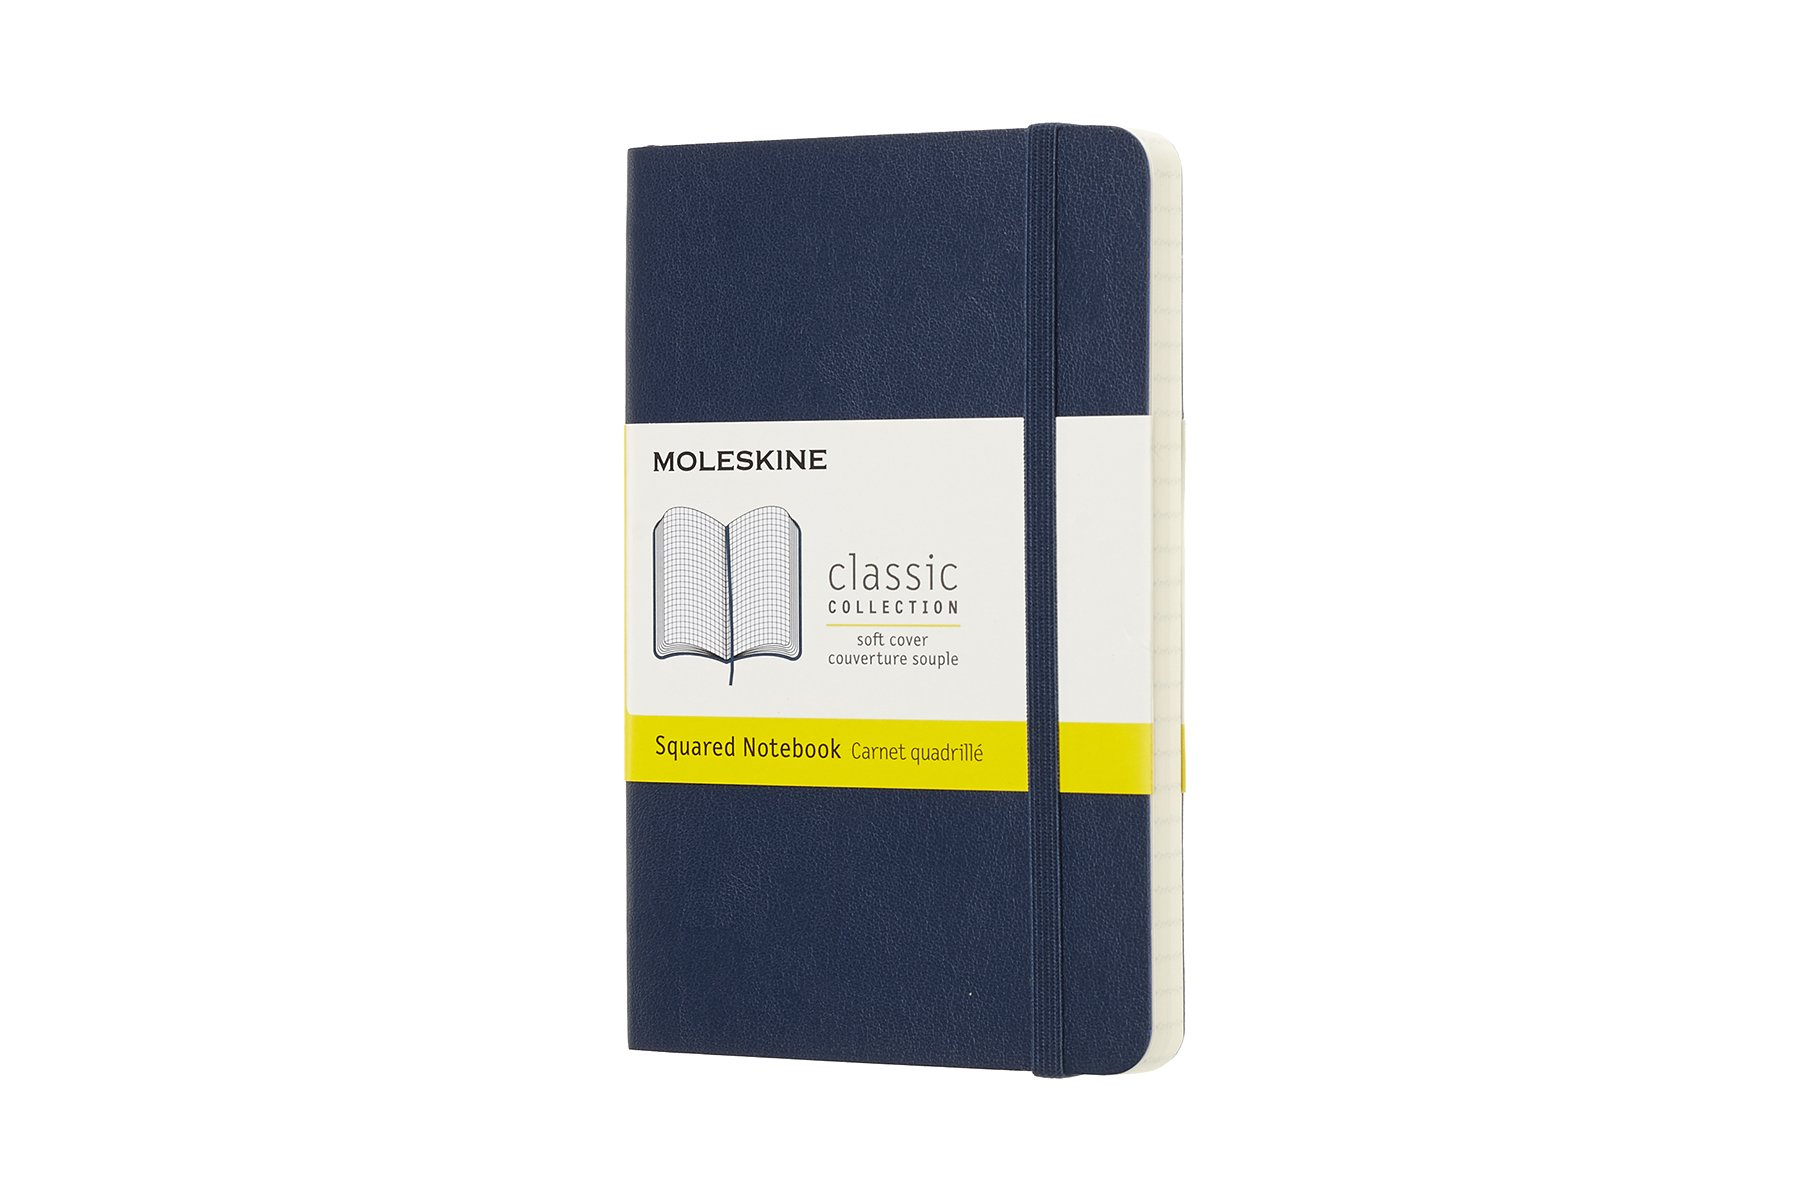 Moleskine Classic Soft Cover Notebook, Squared, Pocket Size.